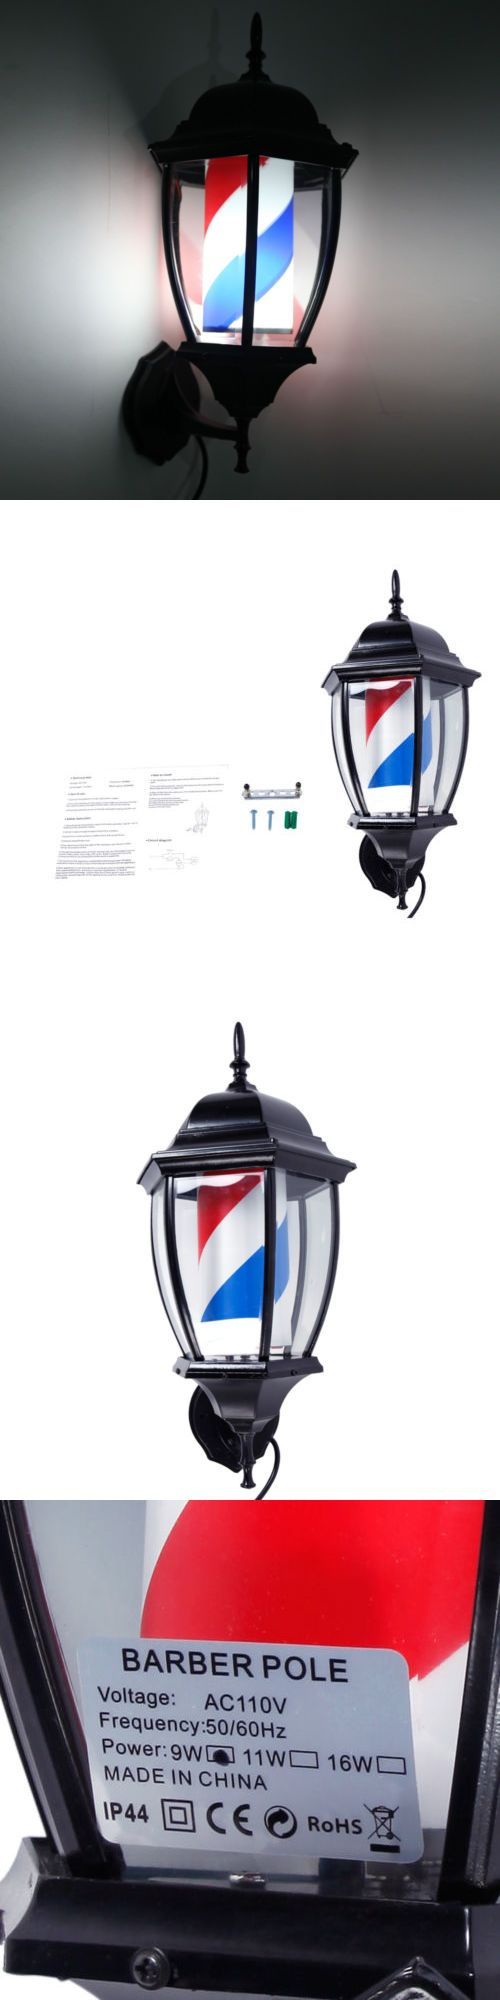 Other Salon and Spa Equipment: 20 Barber Shop Pole Rotating Led Light Sign Hair Salon Us Plug Red Blue White -> BUY IT NOW ONLY: $46.59 on eBay!